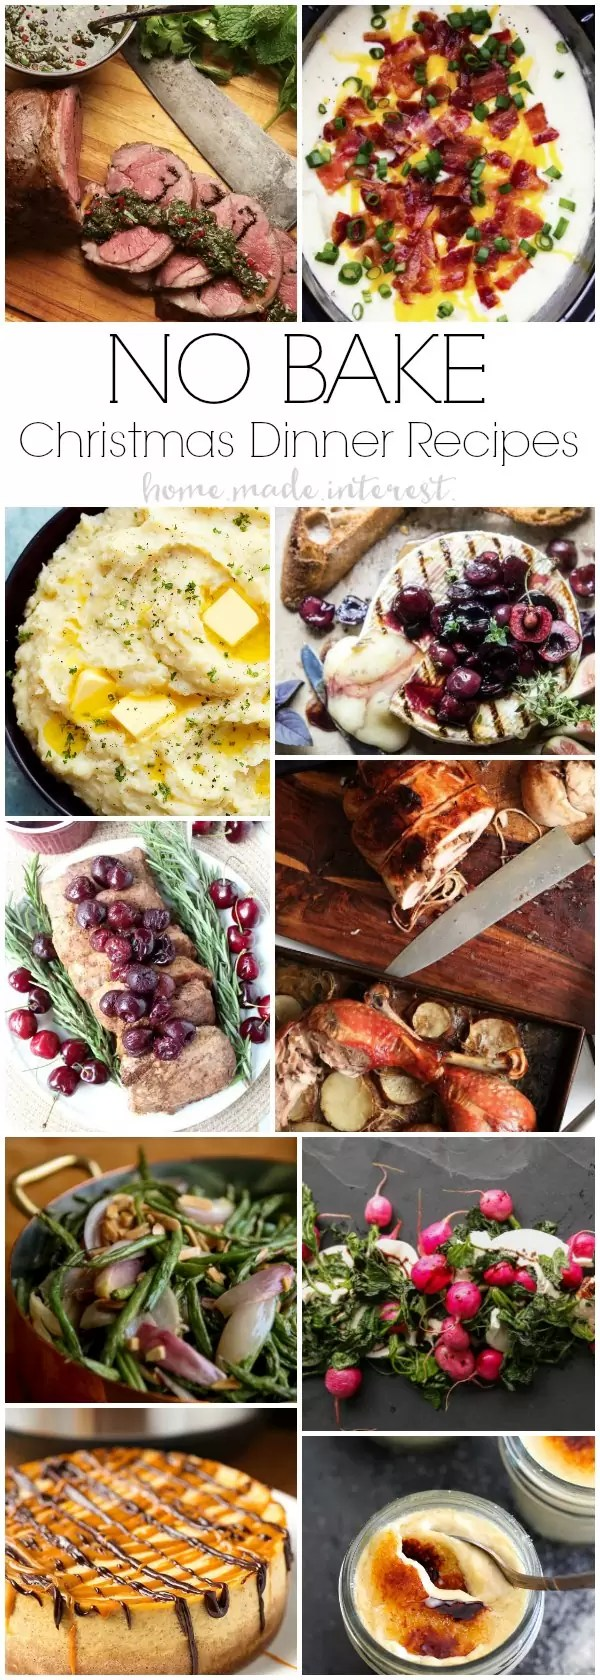 No-Bake Christmas Dinner Recipes that are made in the slow cooker, instant pot, rice cooker, sous vide.